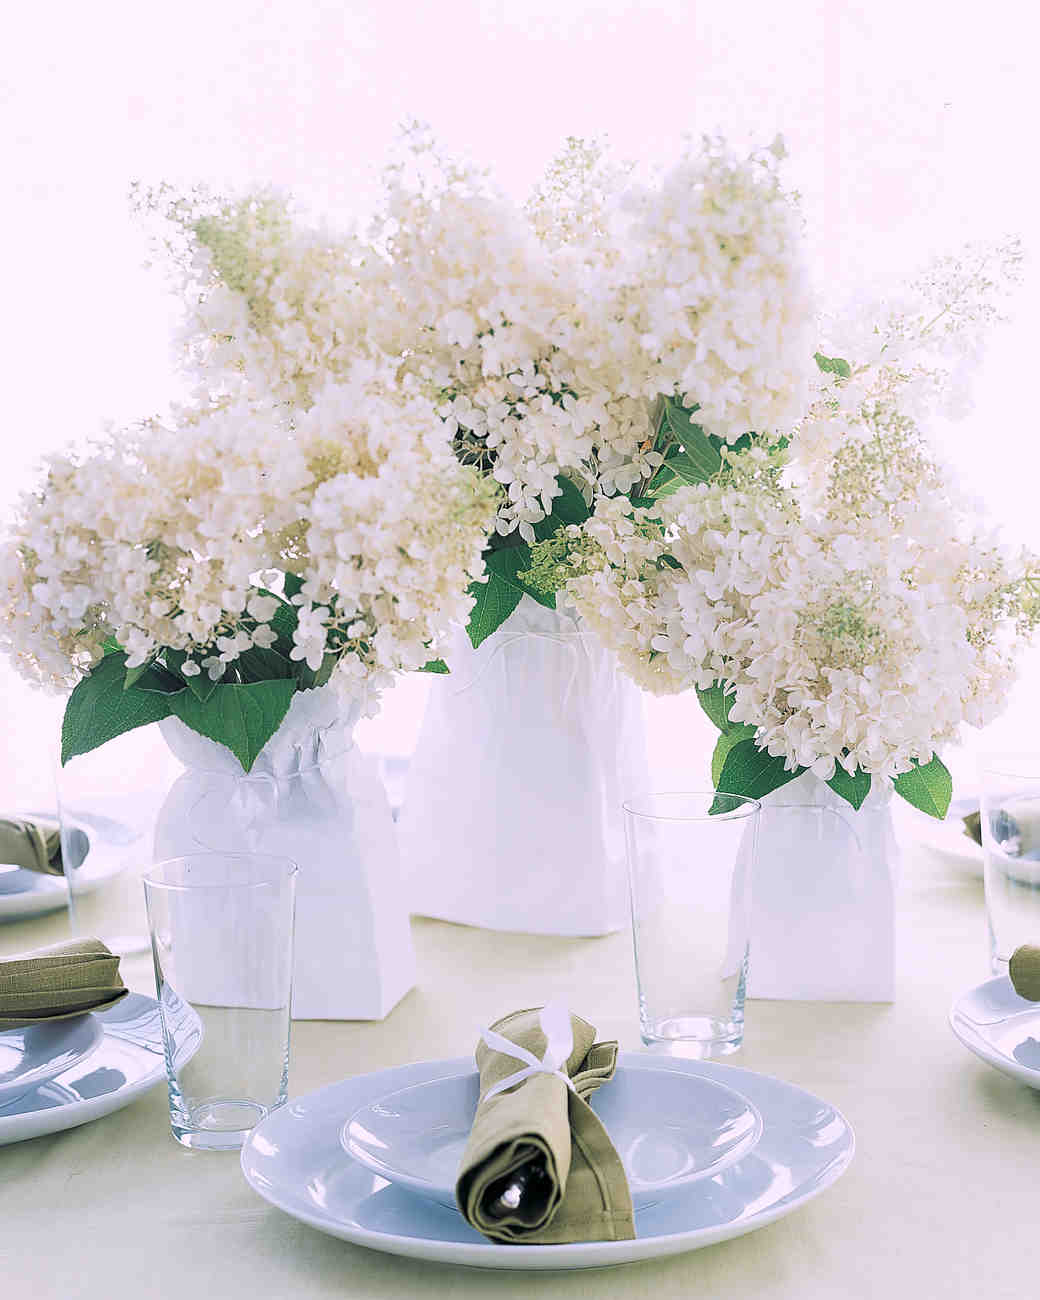 Wedding Decorations Cheap: Affordable Wedding Centerpieces That Don't Look Cheap